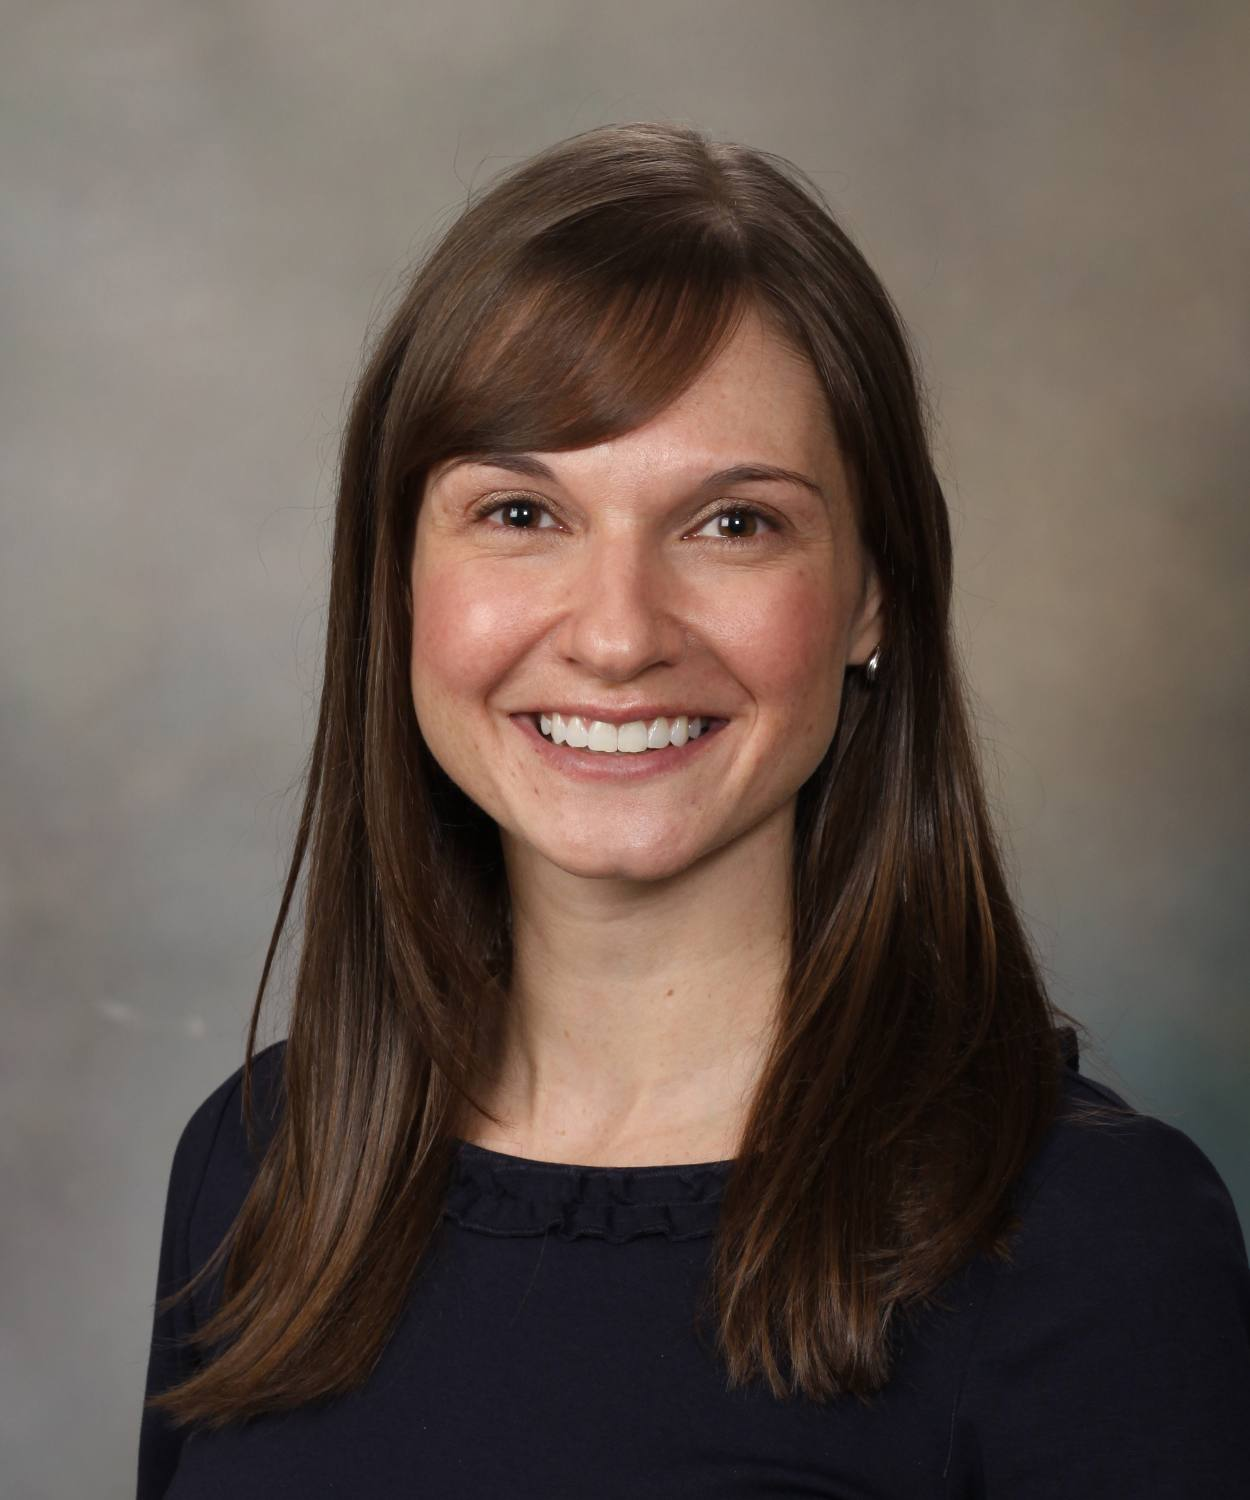 Photo of Rebecca King, M.D.